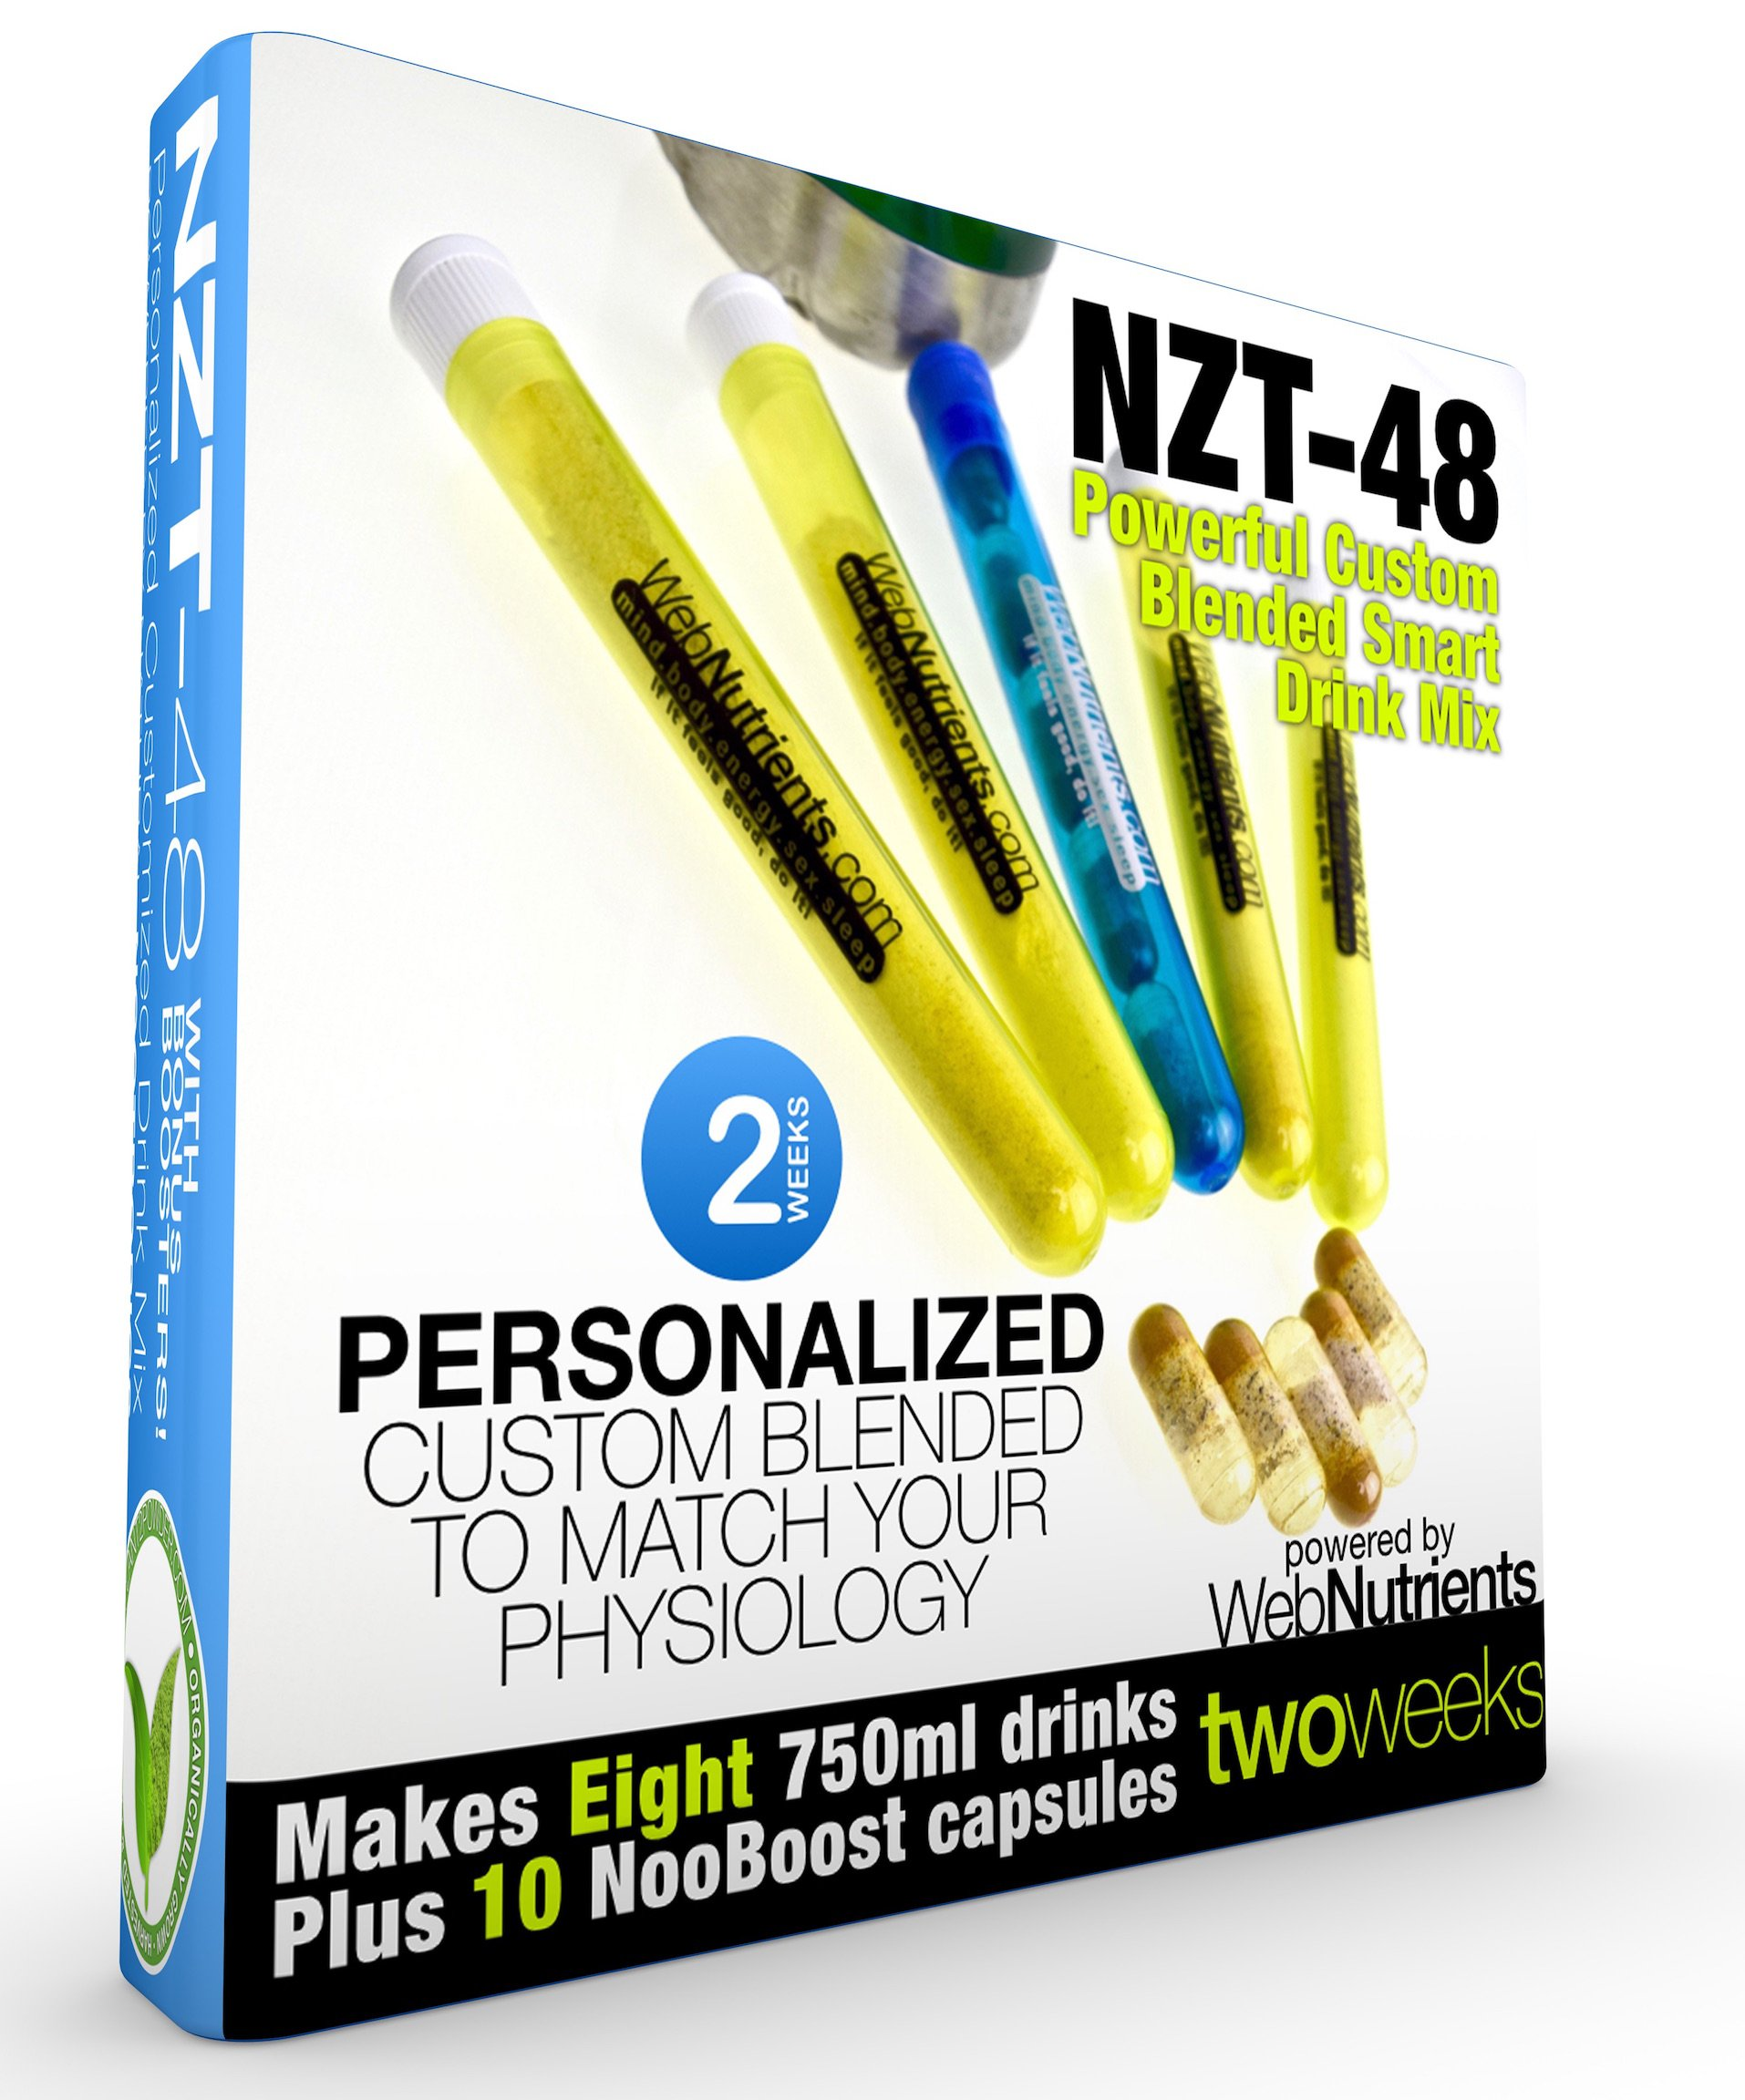 Limitless NZT-48 - 8 Drinks+10 Capsules - Powerful, Customized and Personalized Brain-Boosting Nootropic Drink Mix, with BONUS Booster Capsules. by Nootropic Stacks by WebNutrients